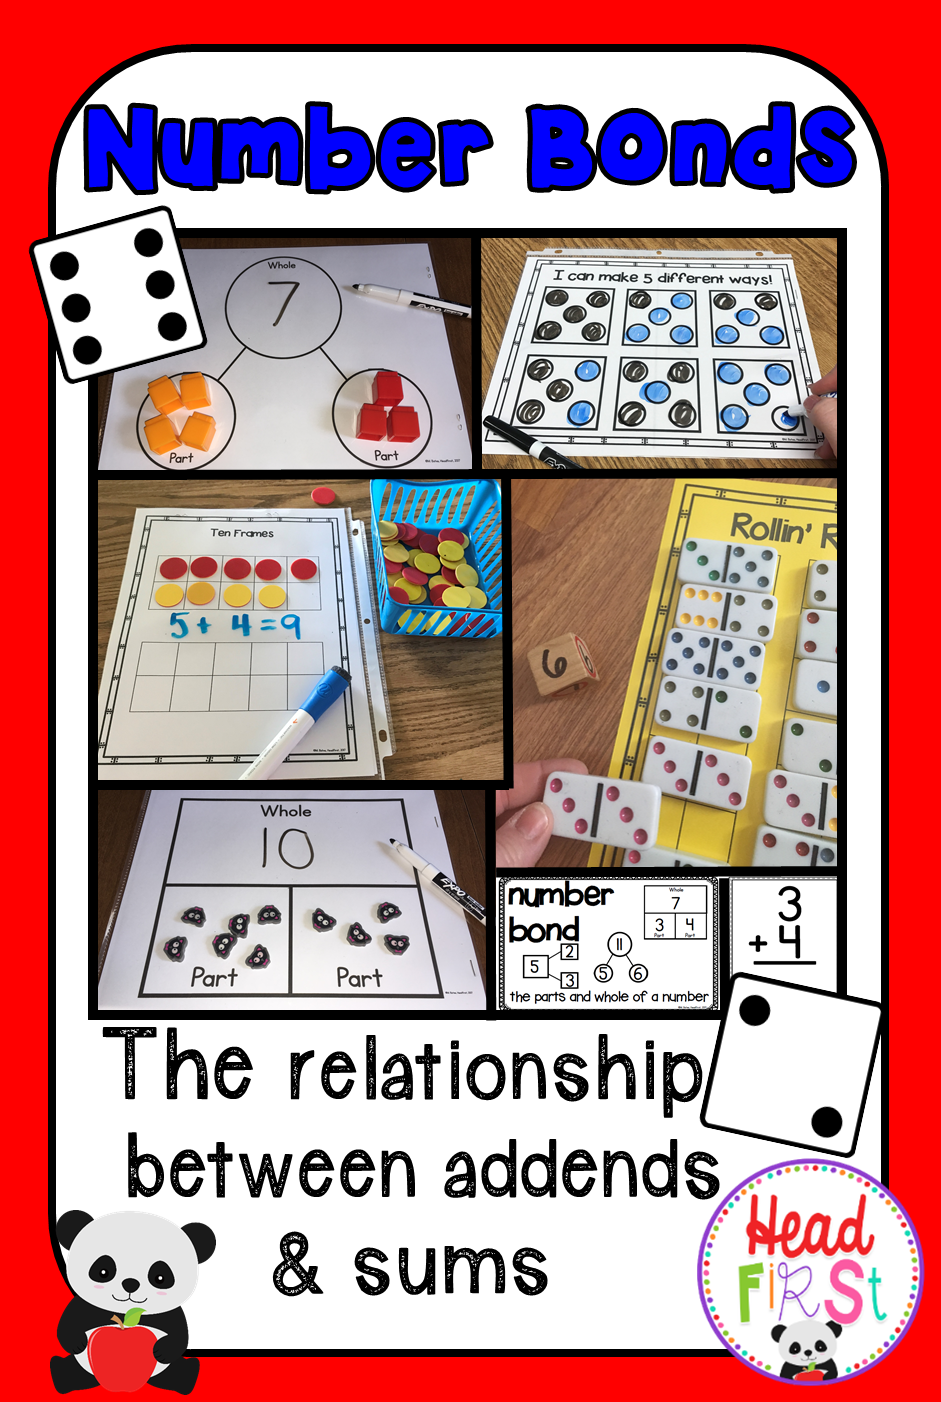 Number Bonds Are The Relationship Between Addends And Sums Hands On Activities Help Drive This Concept H 1st Grade Math Worksheets Number Bonds 1st Grade Math [ 1402 x 941 Pixel ]